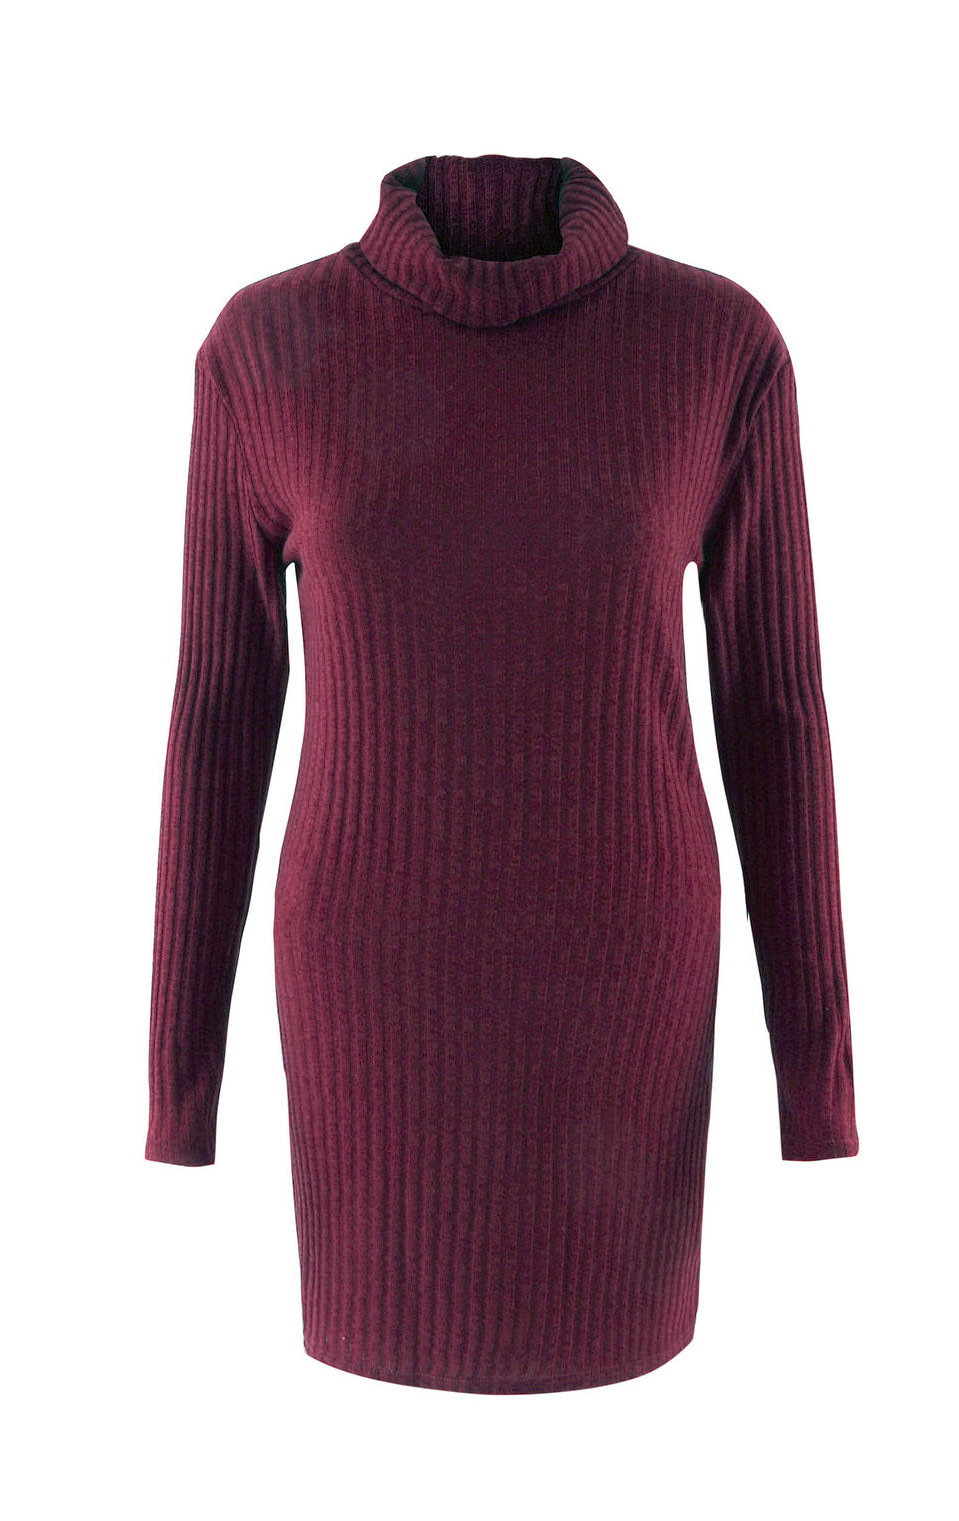 Turtleneck Long knitted pullover sweater, Women's Jumper, Casual Sweater 37